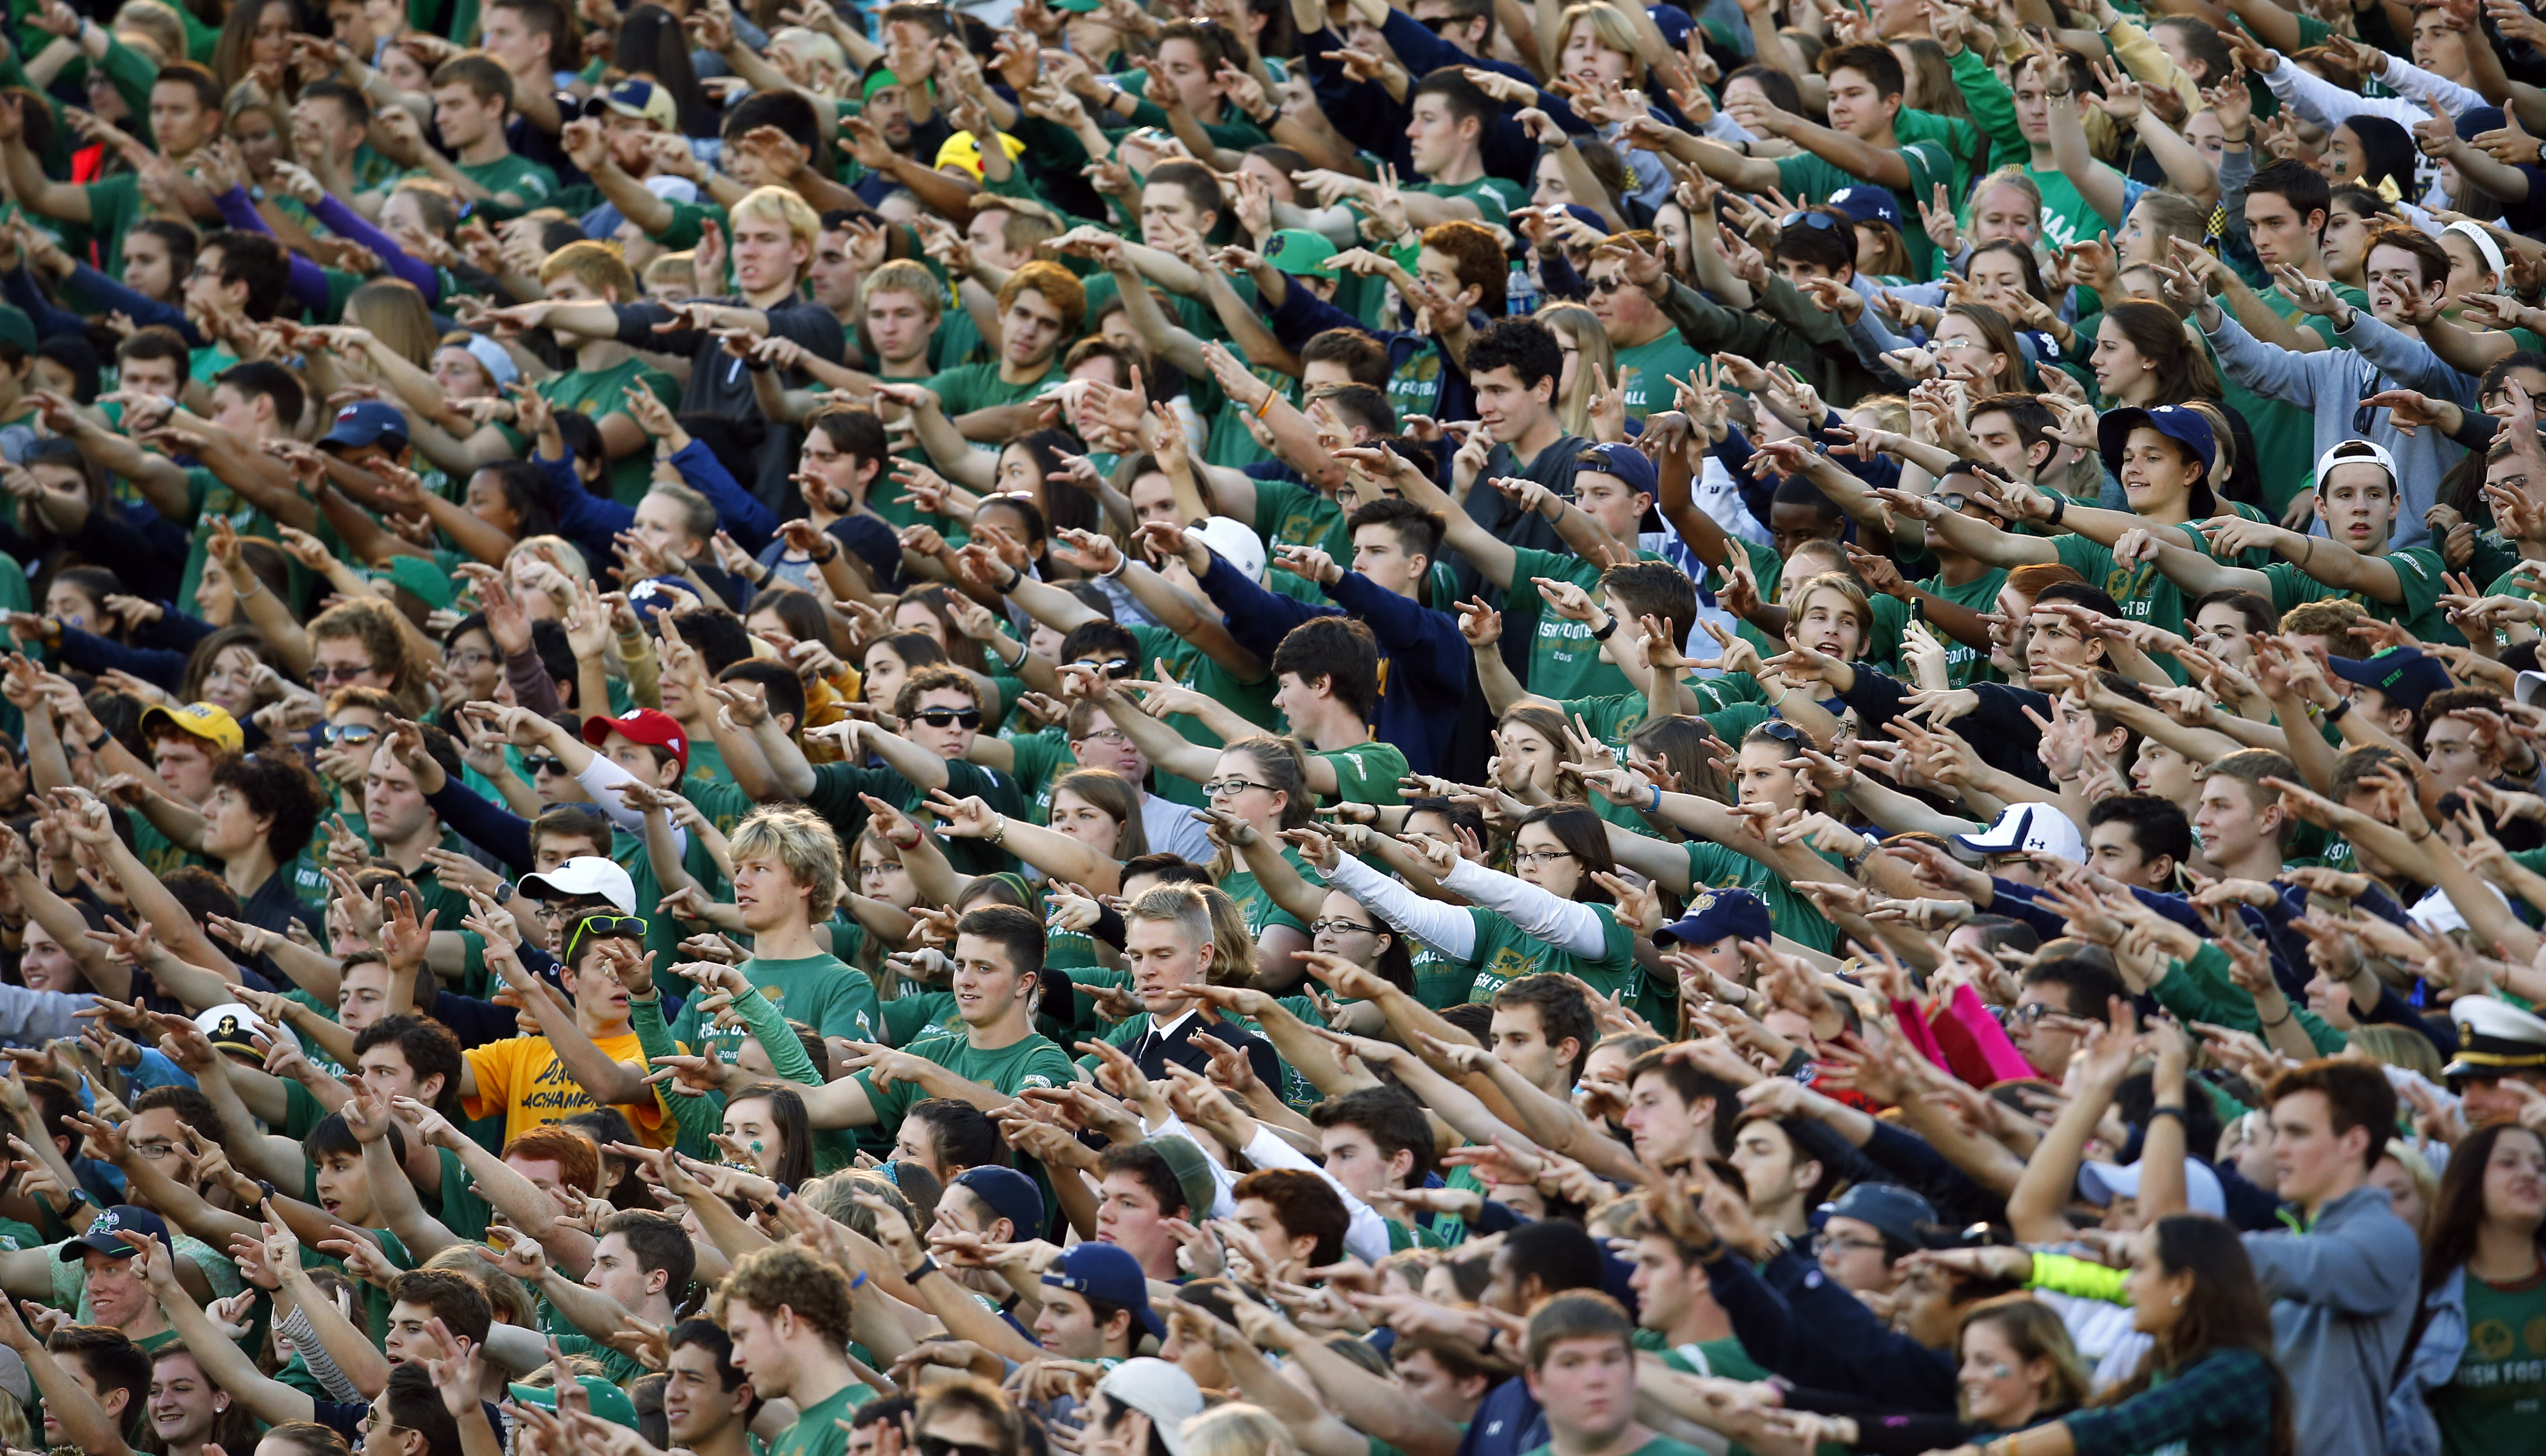 The Notre Dame student section waves their arms at the start of the fourth quarter of an NCAA college football game against Navy, Saturday, Oct. 10, 2015, in South Bend, Ind. Notre Dame won the game 41-24. (AP Photo/Jeff Haynes)